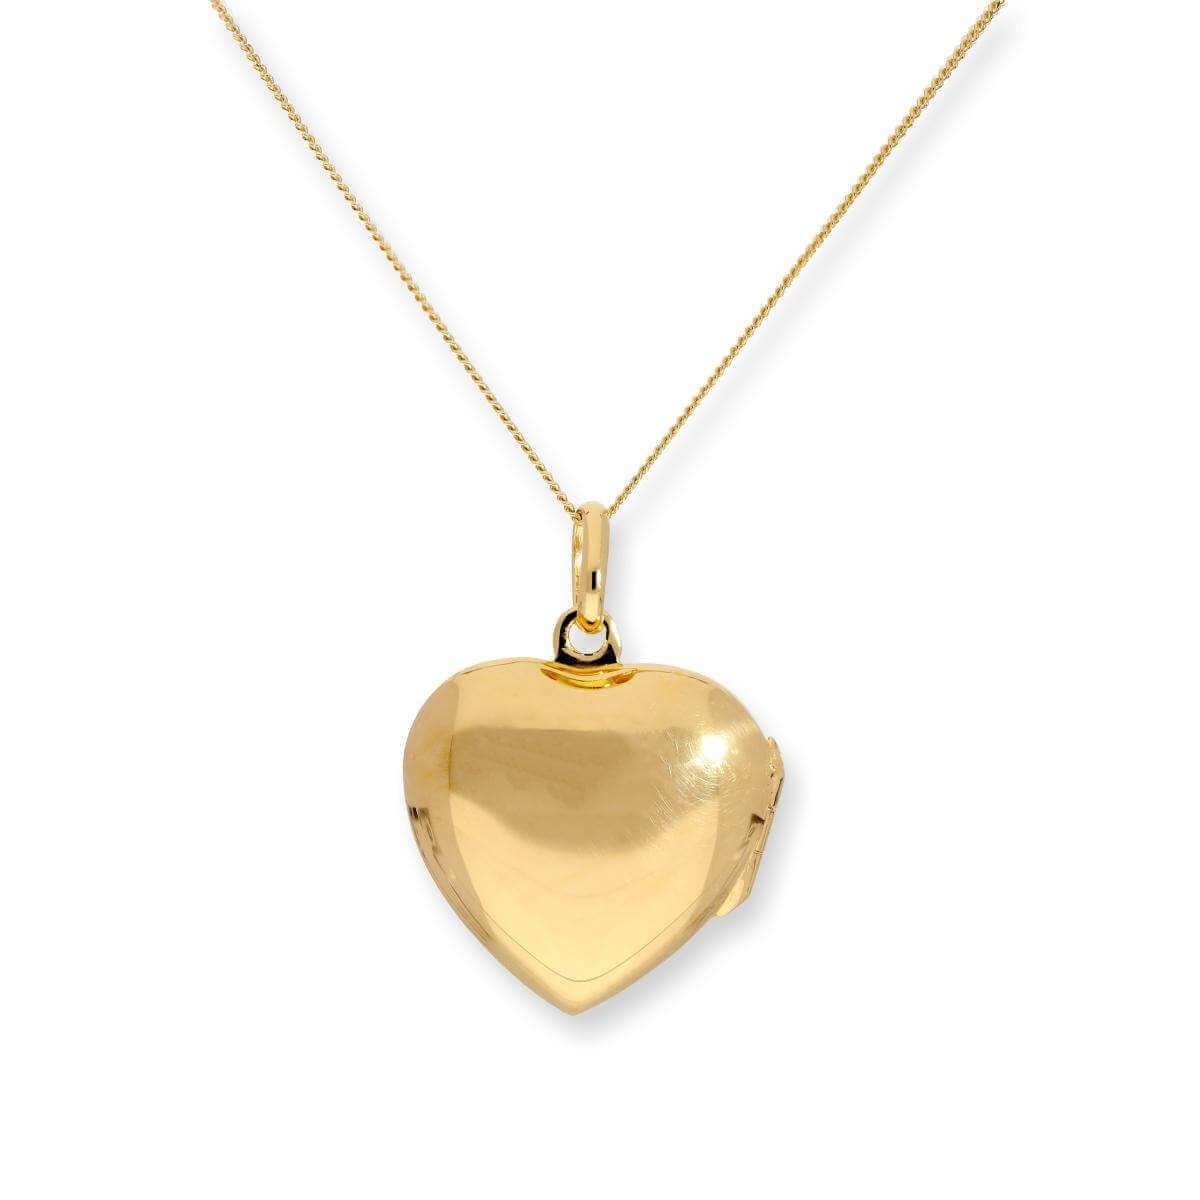 Gold Plated Sterling Silver Engravable Heart Locket on Chain 16 - 22 Inches